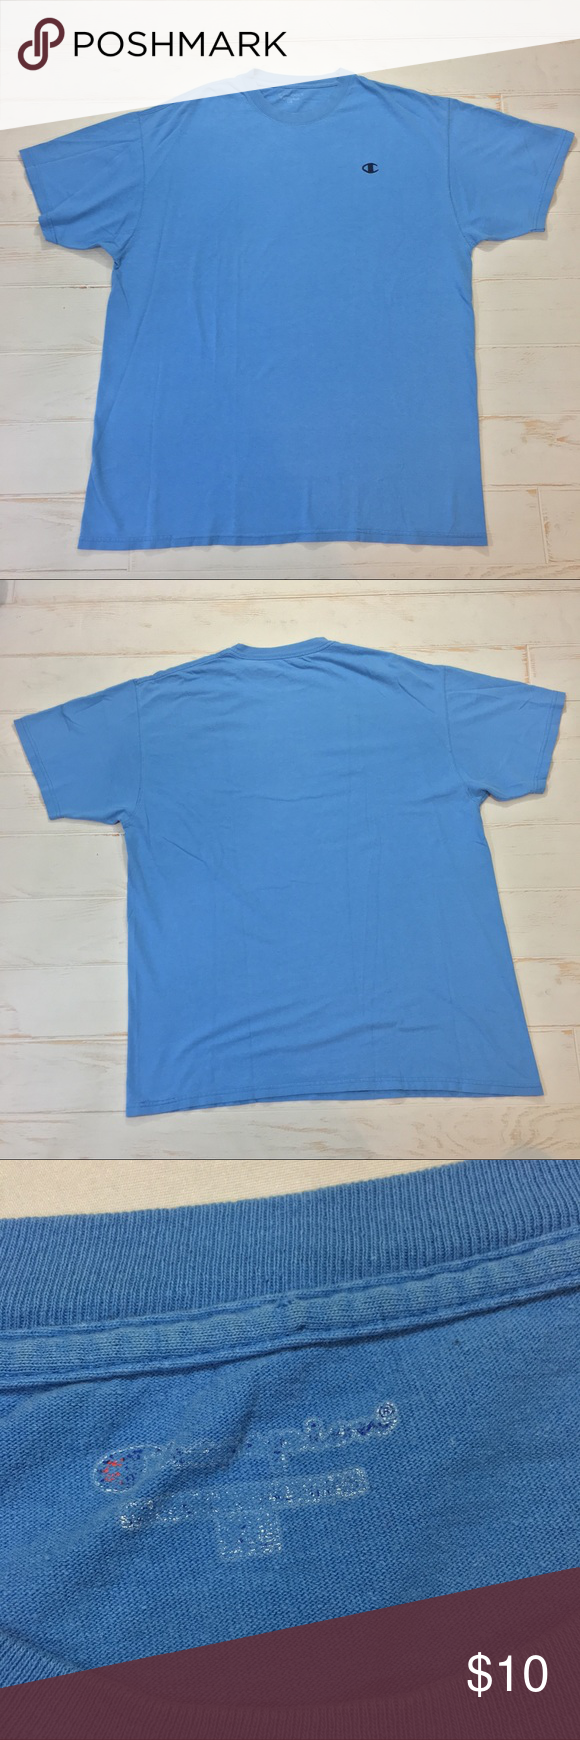 7b003673 Vintage Champion Light Blue Basic Solid T Shirt Vintage Champion Light Blue  Black Small Logo Basic Solid T Shirt Size XL Good condition tag is just  faded ...